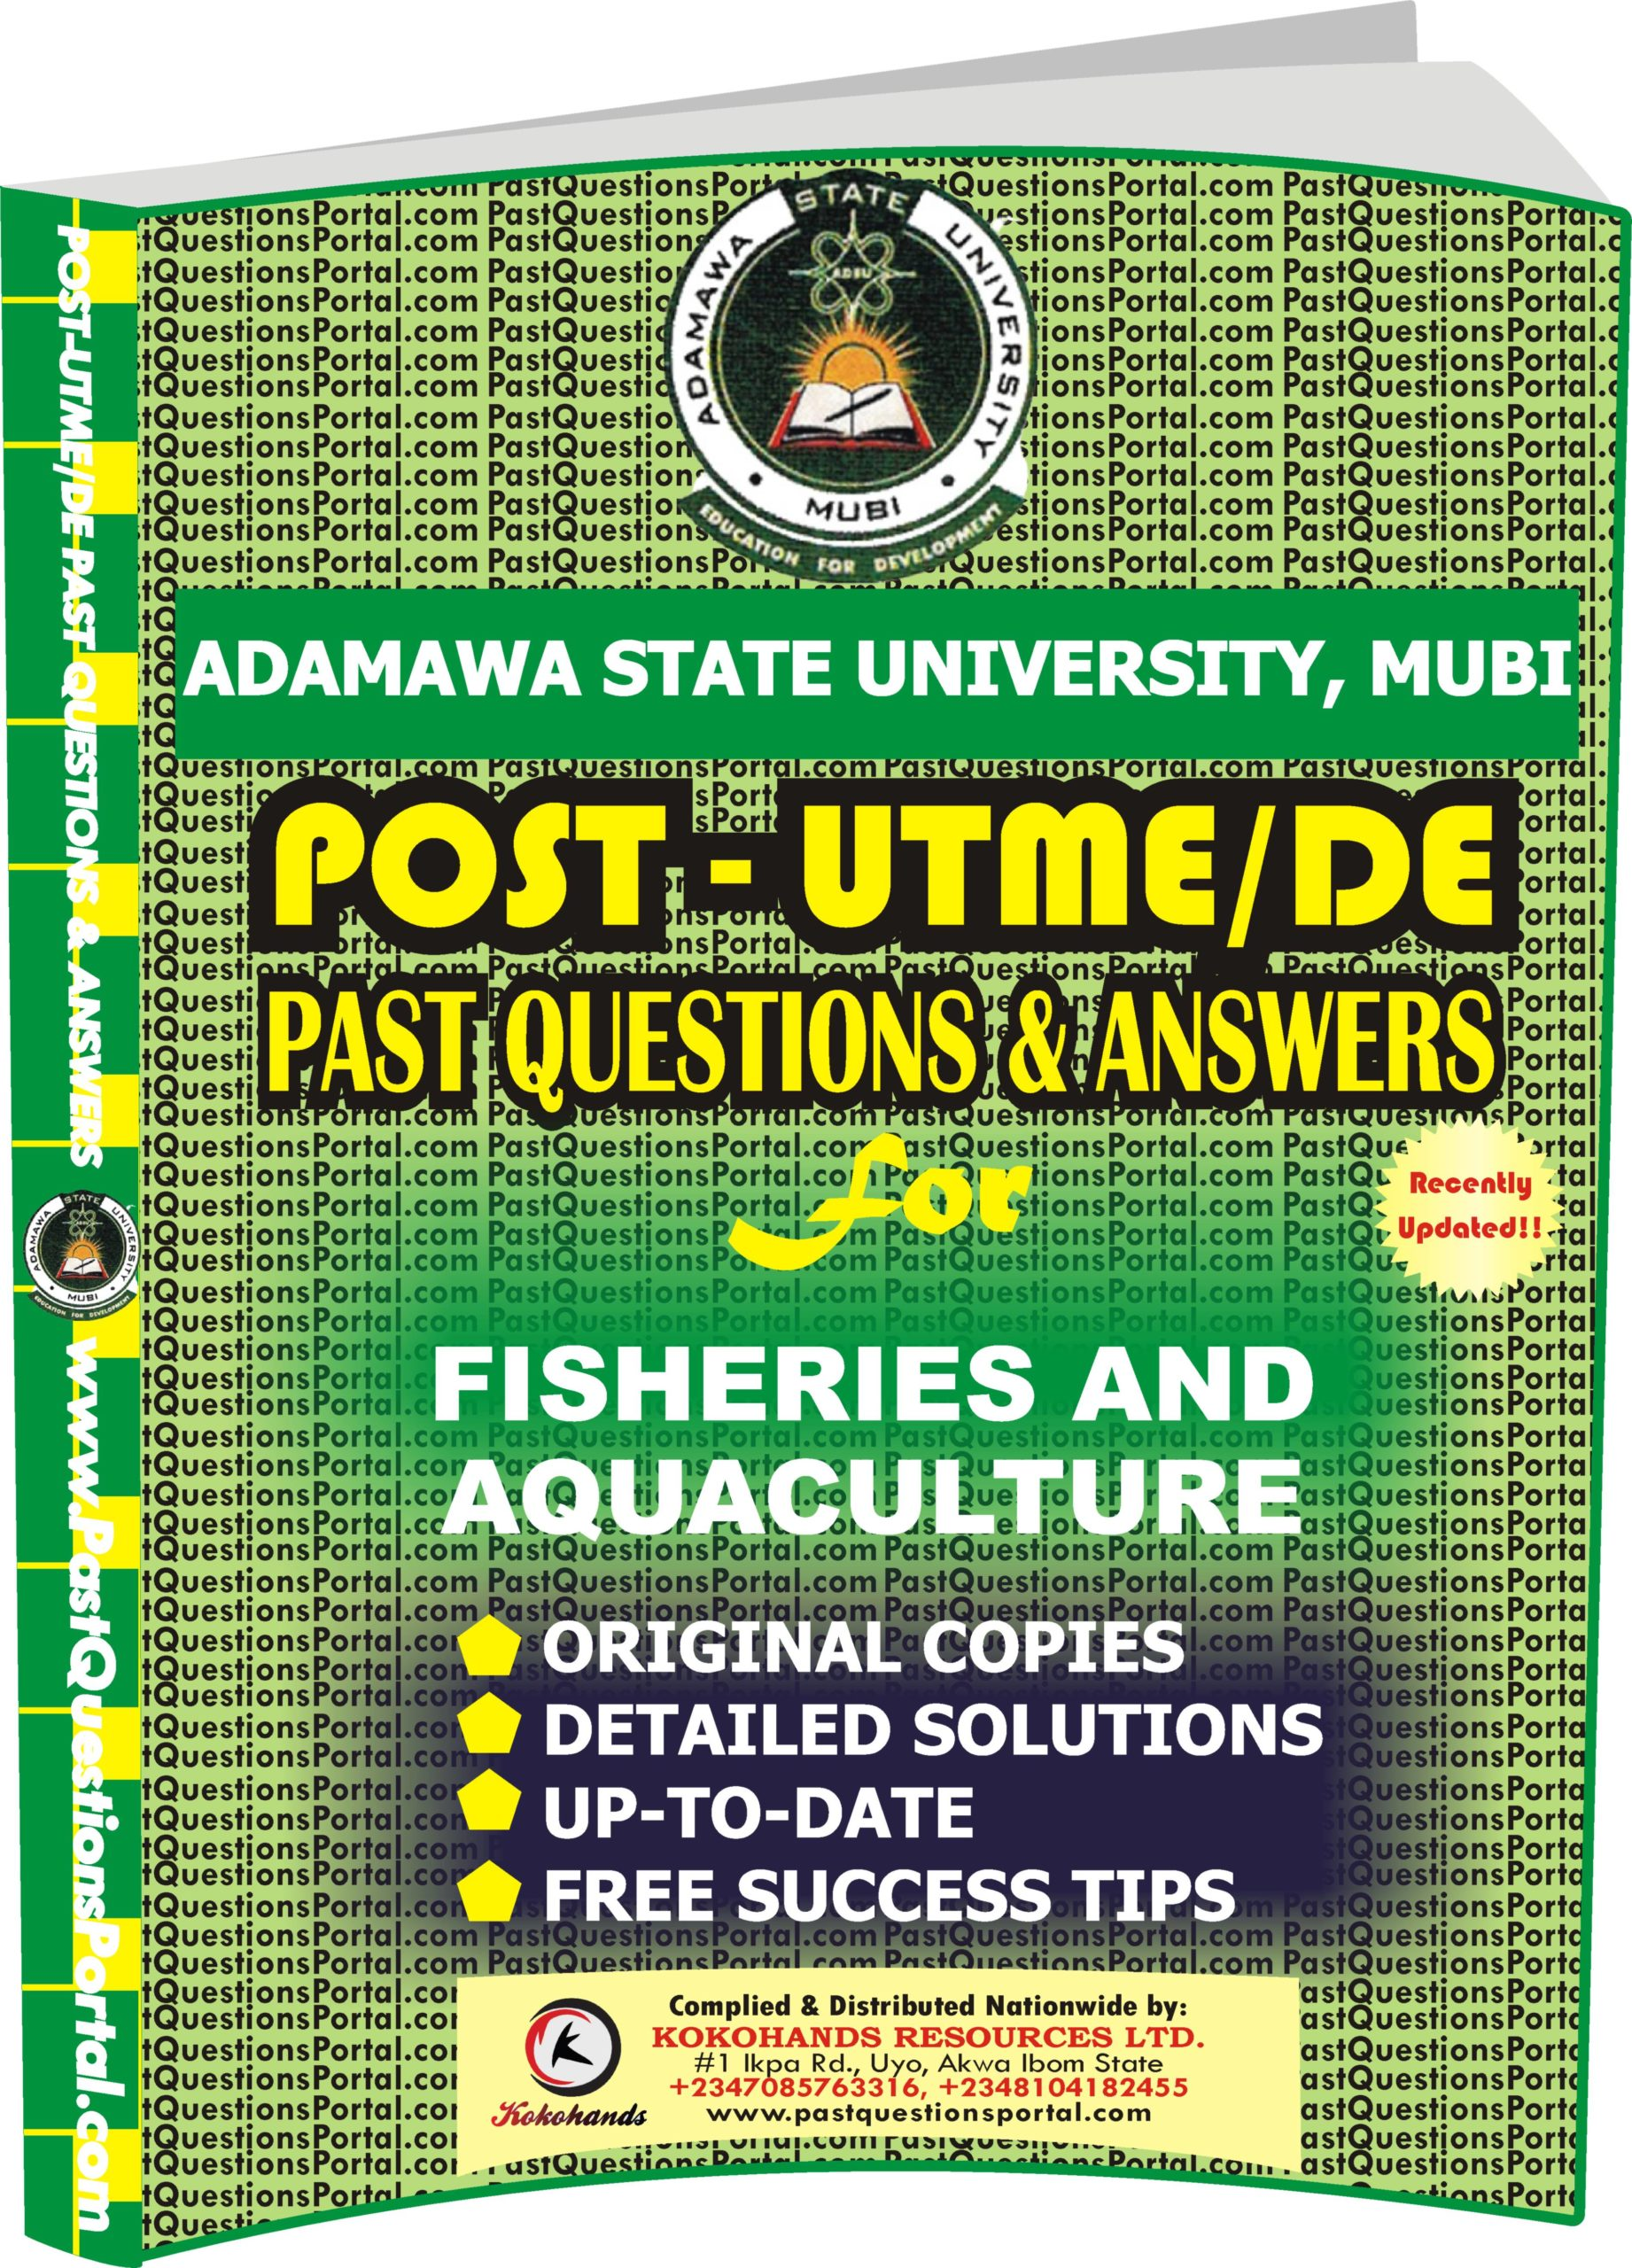 ADSU Post UTME Past Questions for FISHERIES & AQUACULTURE